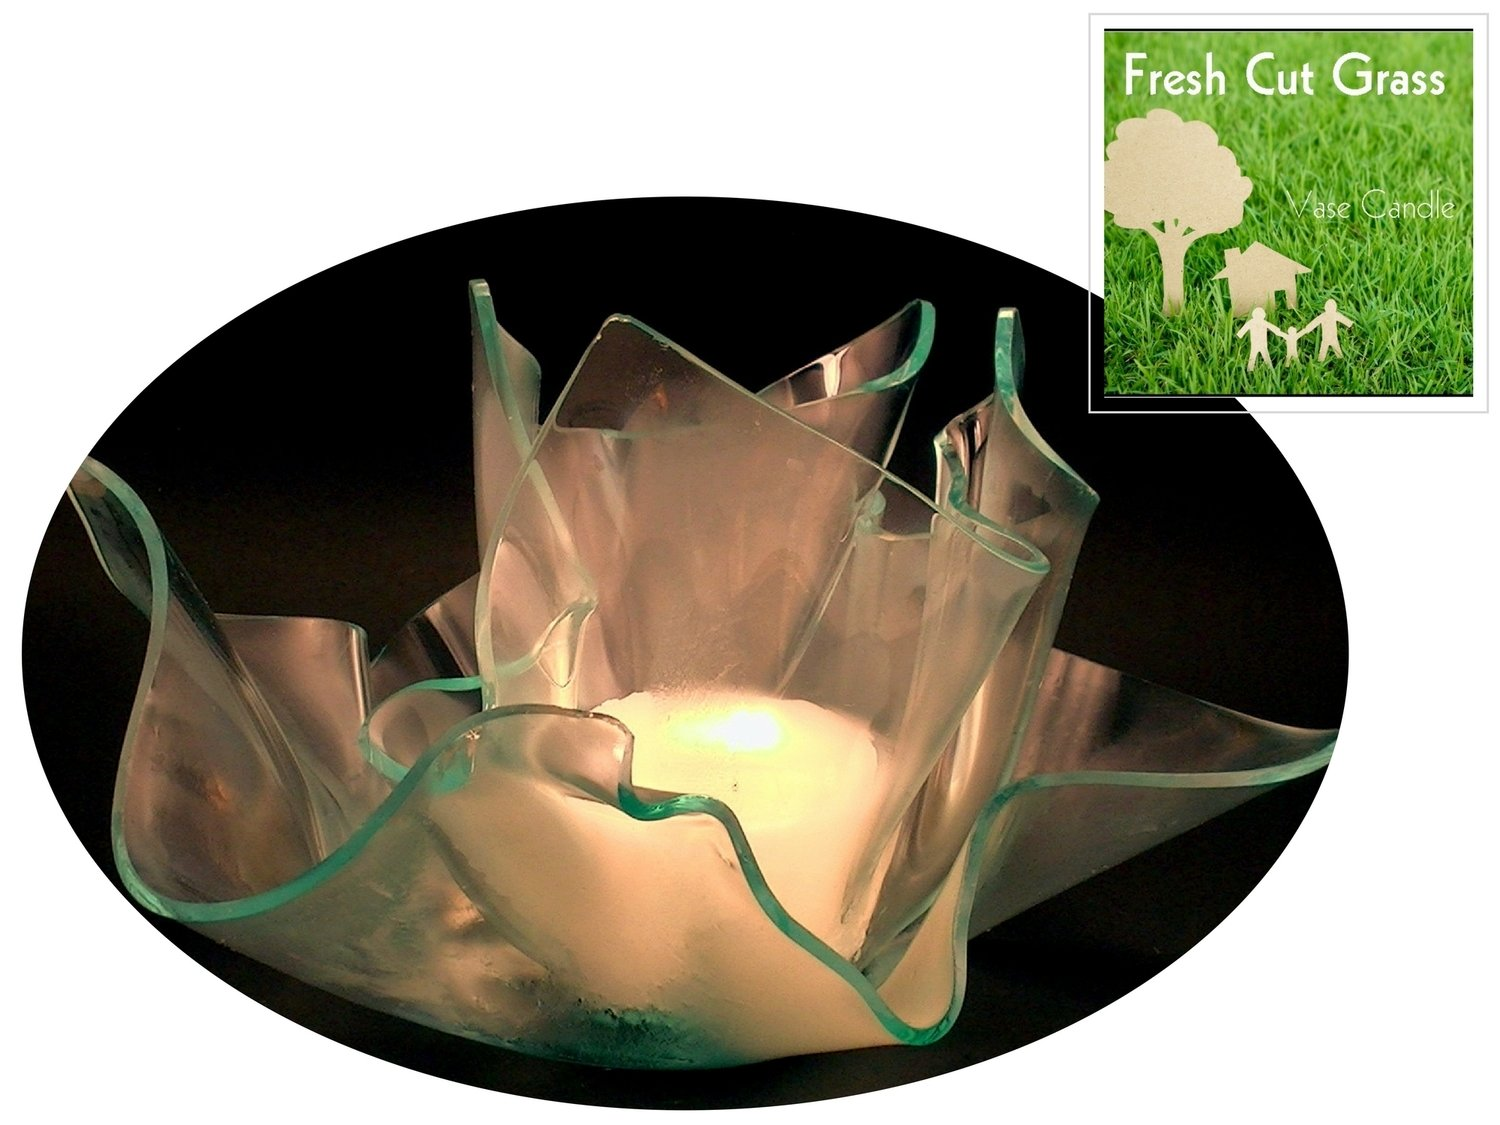 2 Fresh Cut Grass Candle Refills | Clear Satin Vase & Dish Set